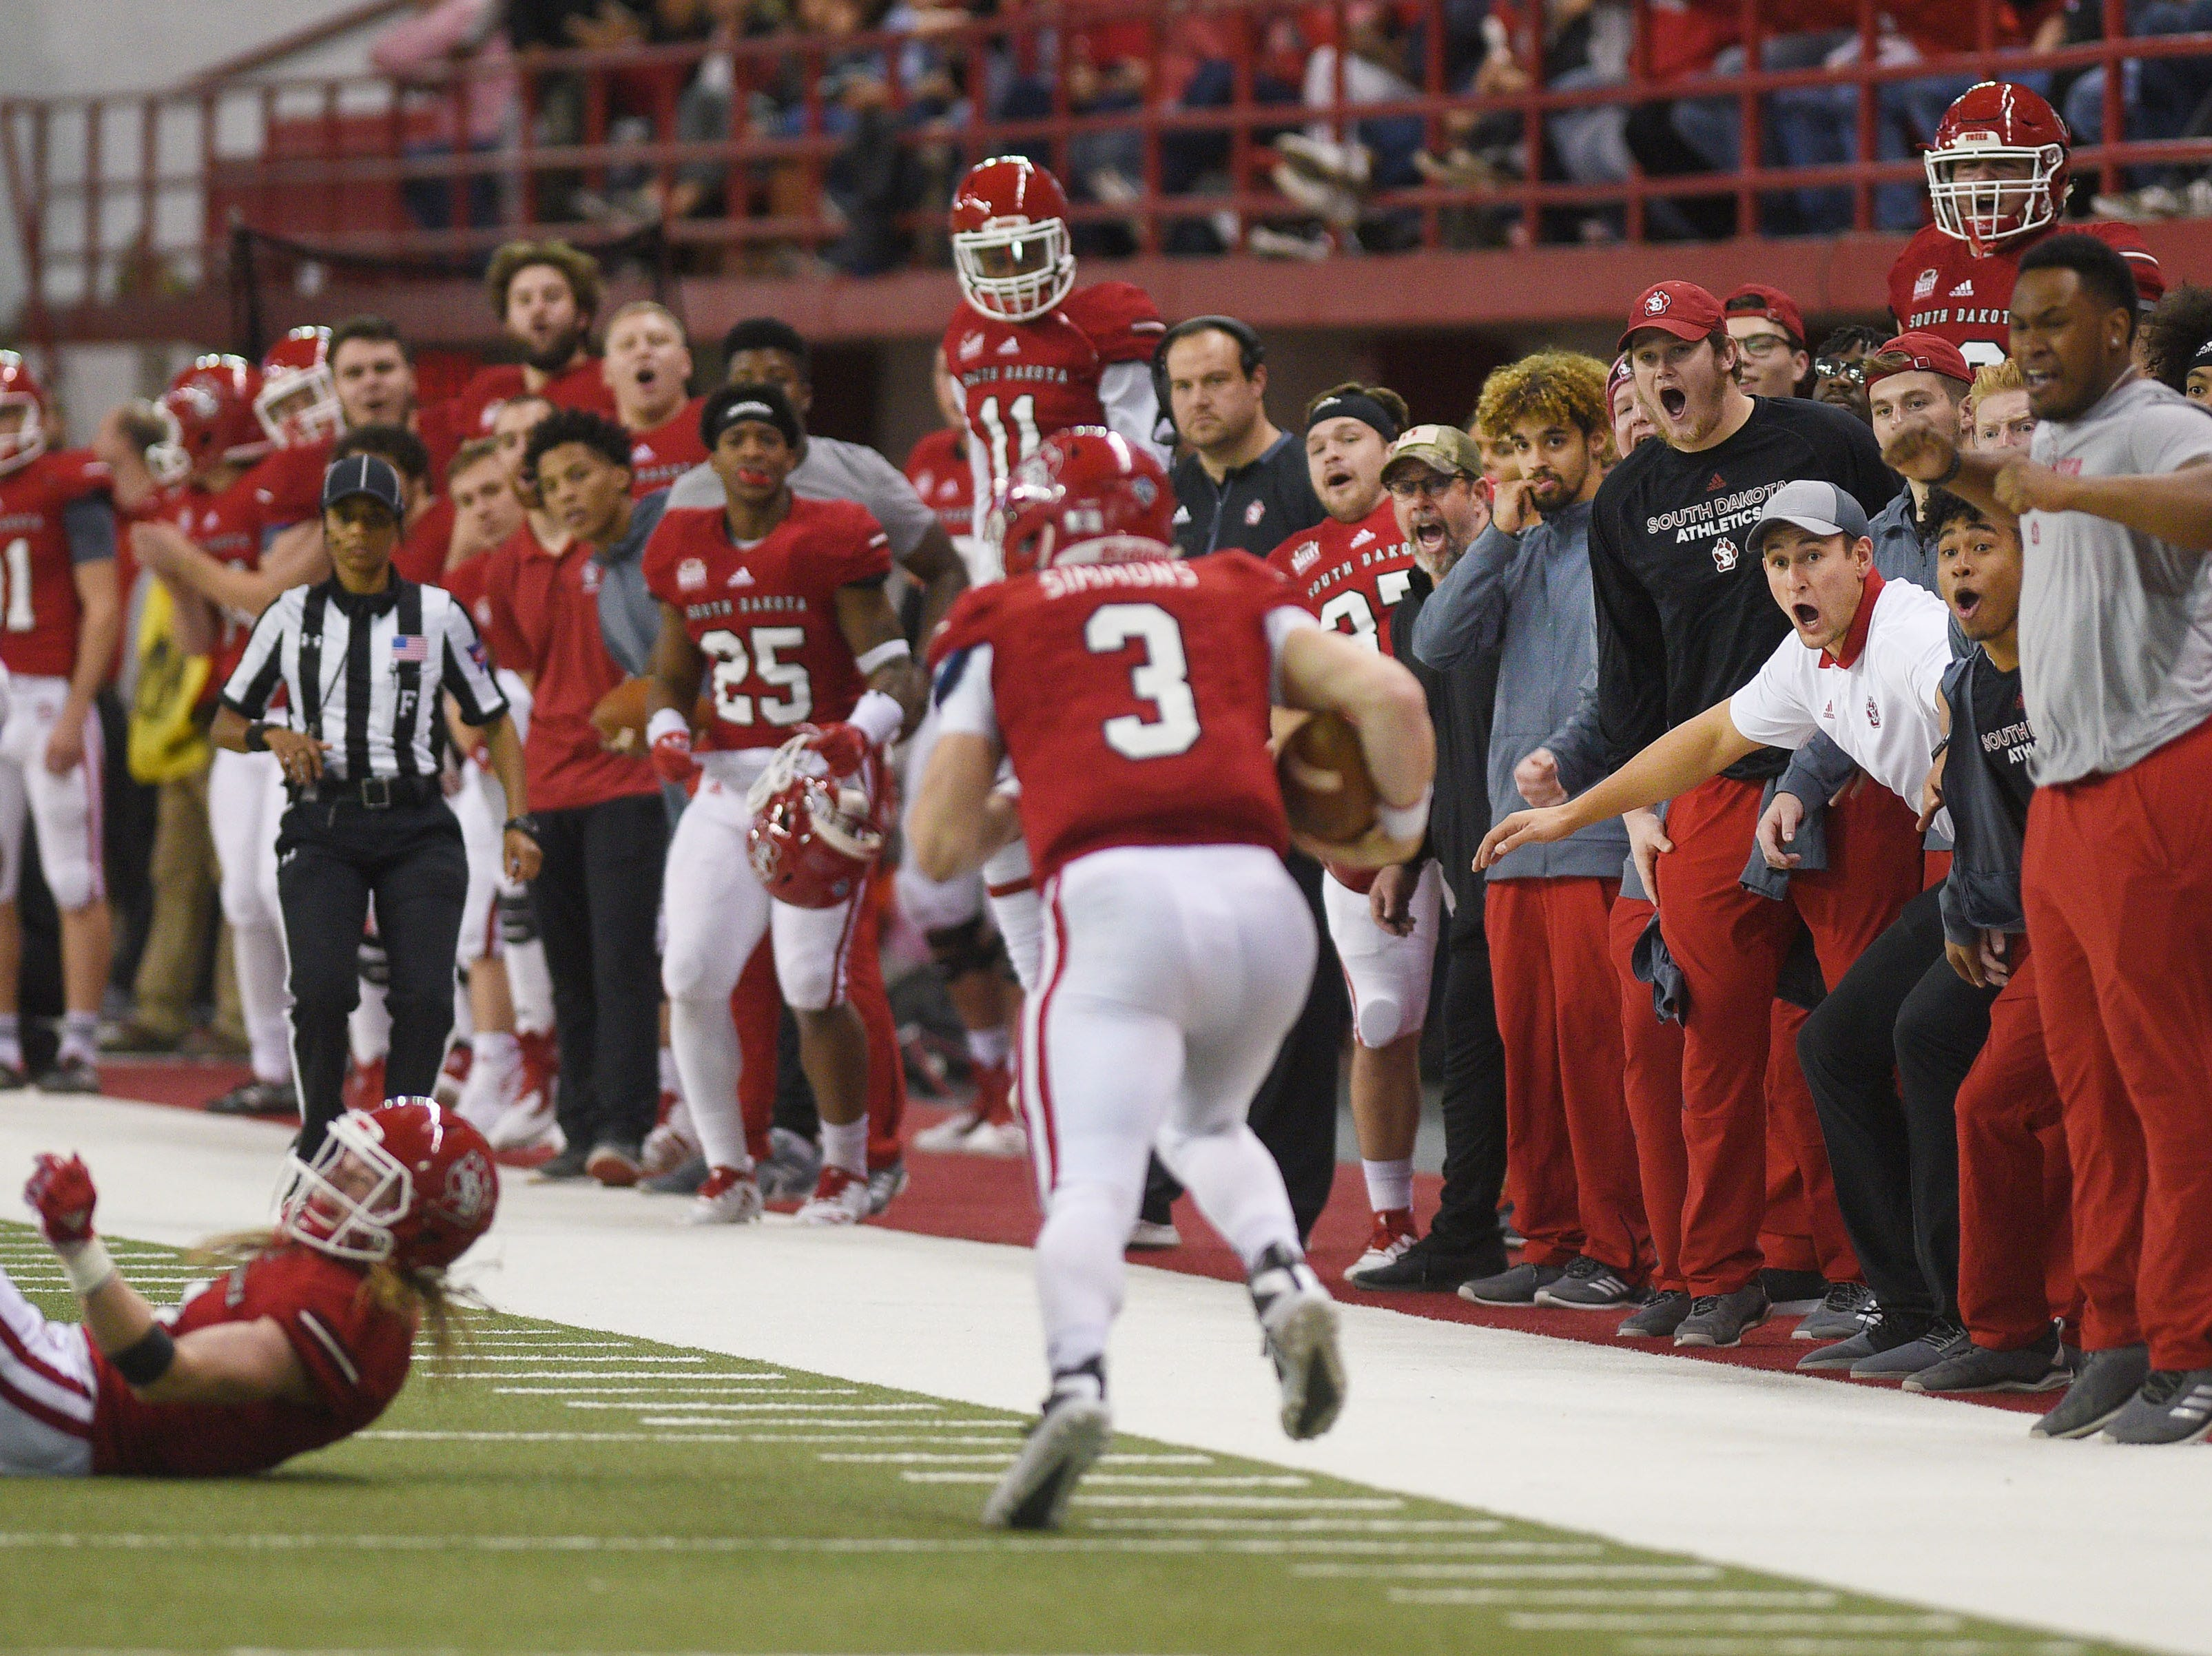 USD's sideline reacts to Austin Simmons staying inbounds during the game against Western Illinois Saturday, Nov. 10, at the DakotaDome in Vermillion.